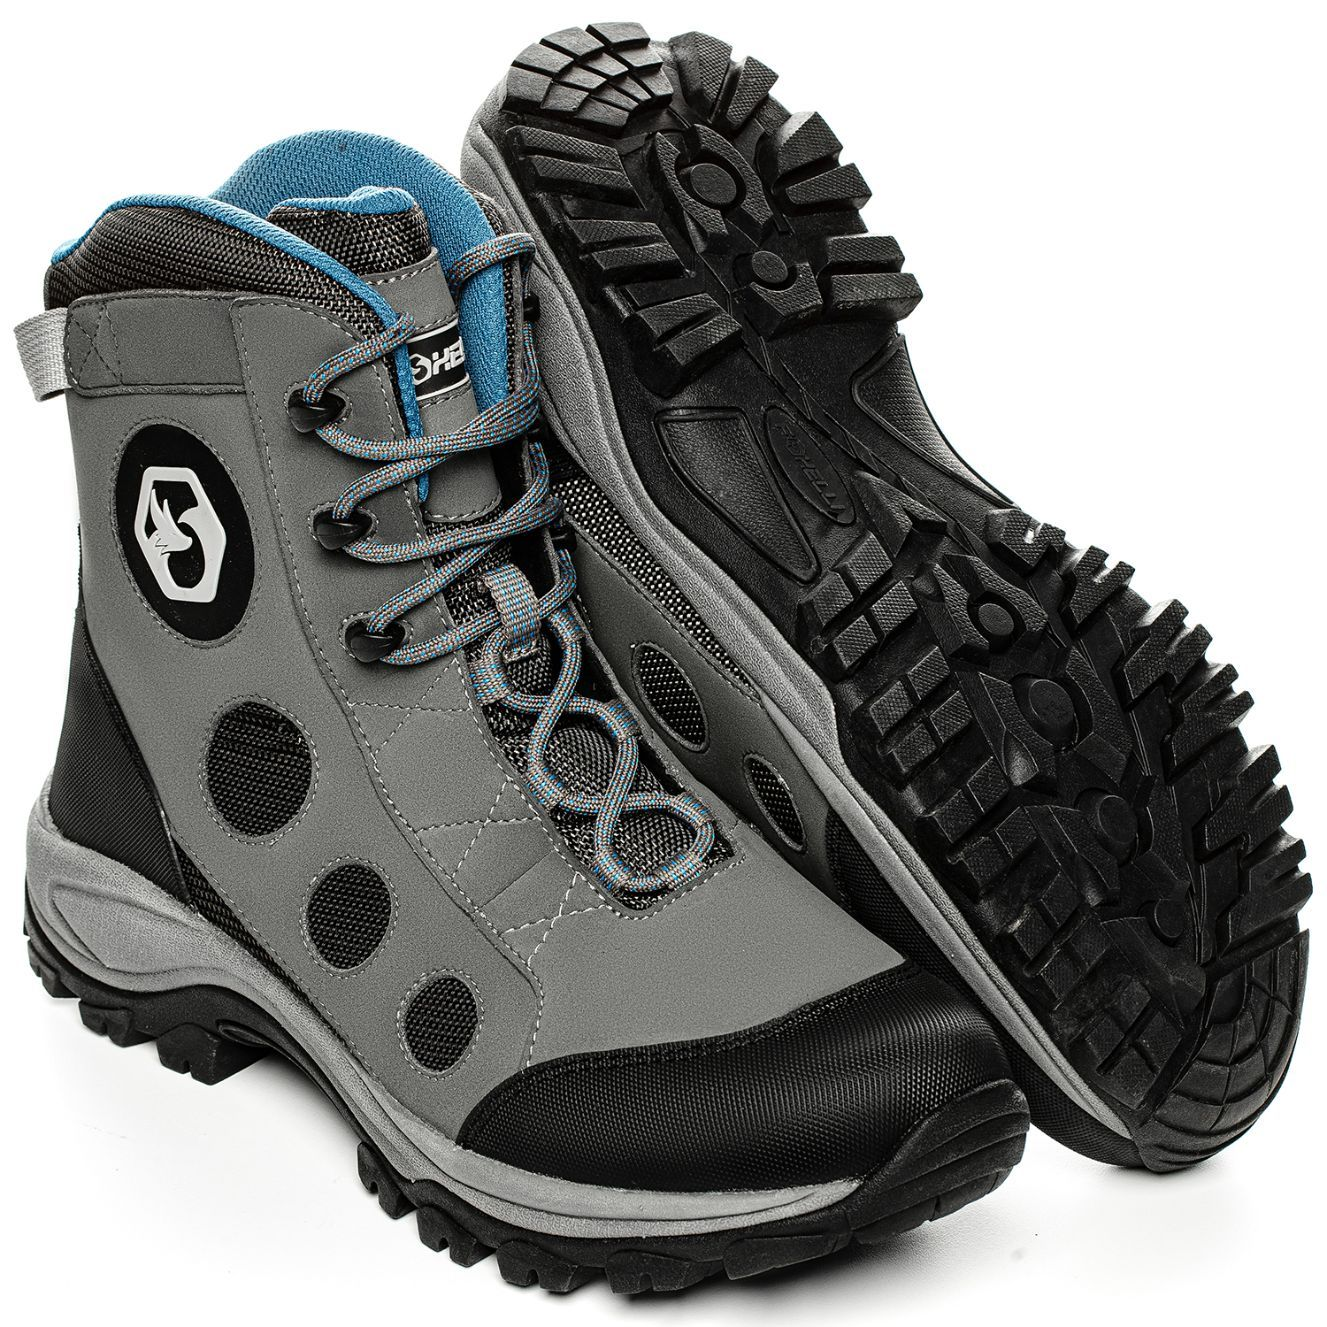 Foxeli budget wading boots